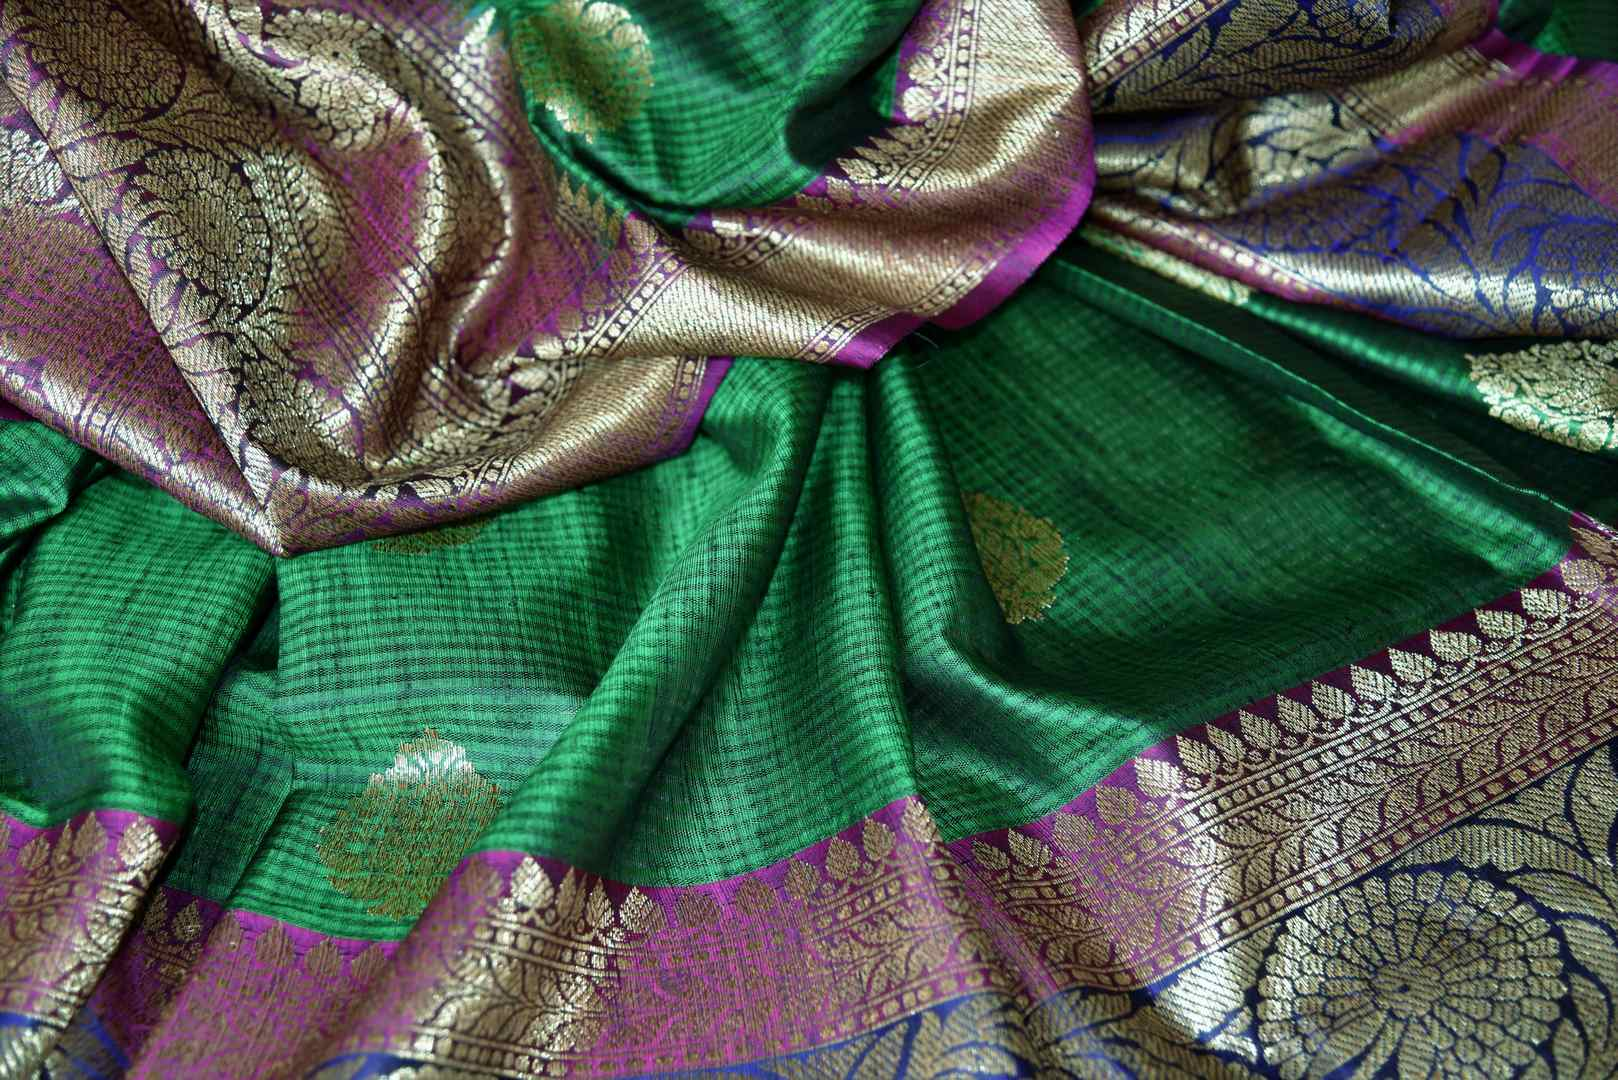 Buy bottle green tussar Banarasi saree with zari border online in USA. If you are heading to an Indian wedding and all you want is a rich traditional style then look no further than Pure Elegance Indian fashion store in USA. We have an exclusive range of Indian designer saris, traditional Banarasi sarees, handloom saris and much more.-details